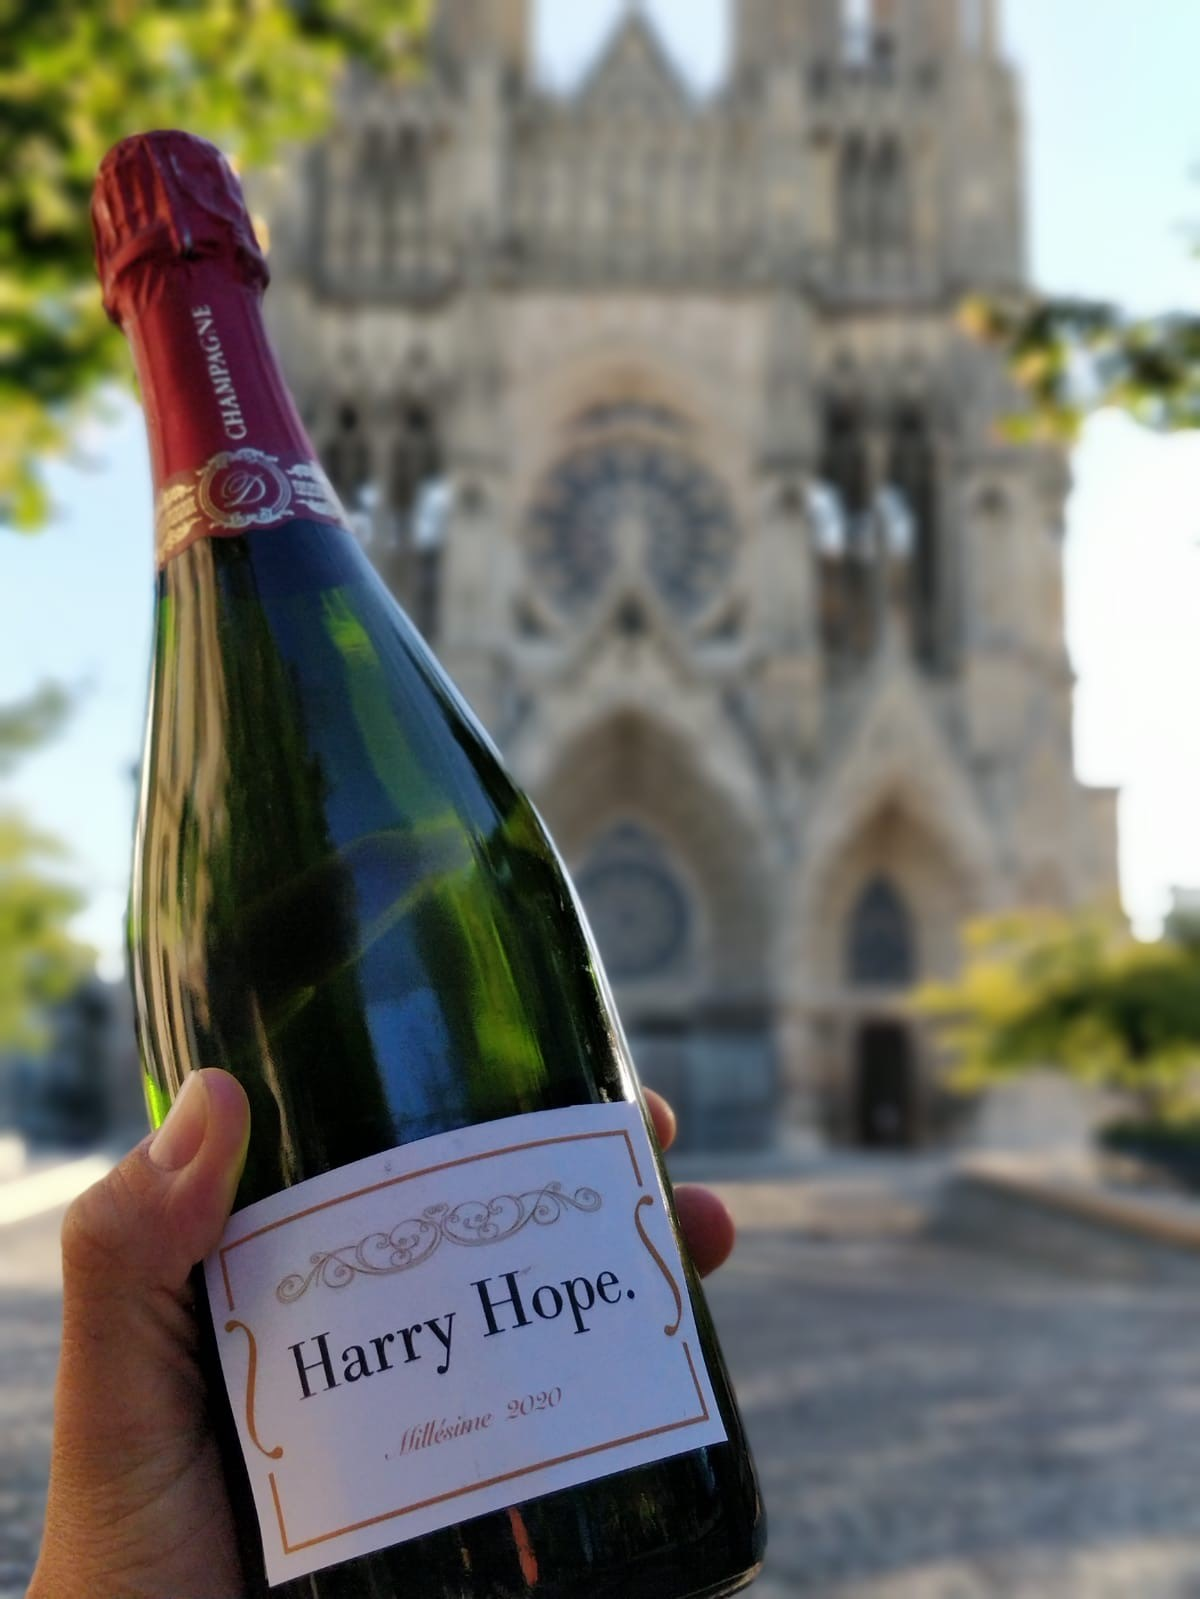 Harry Hope. s'installe à Reims !